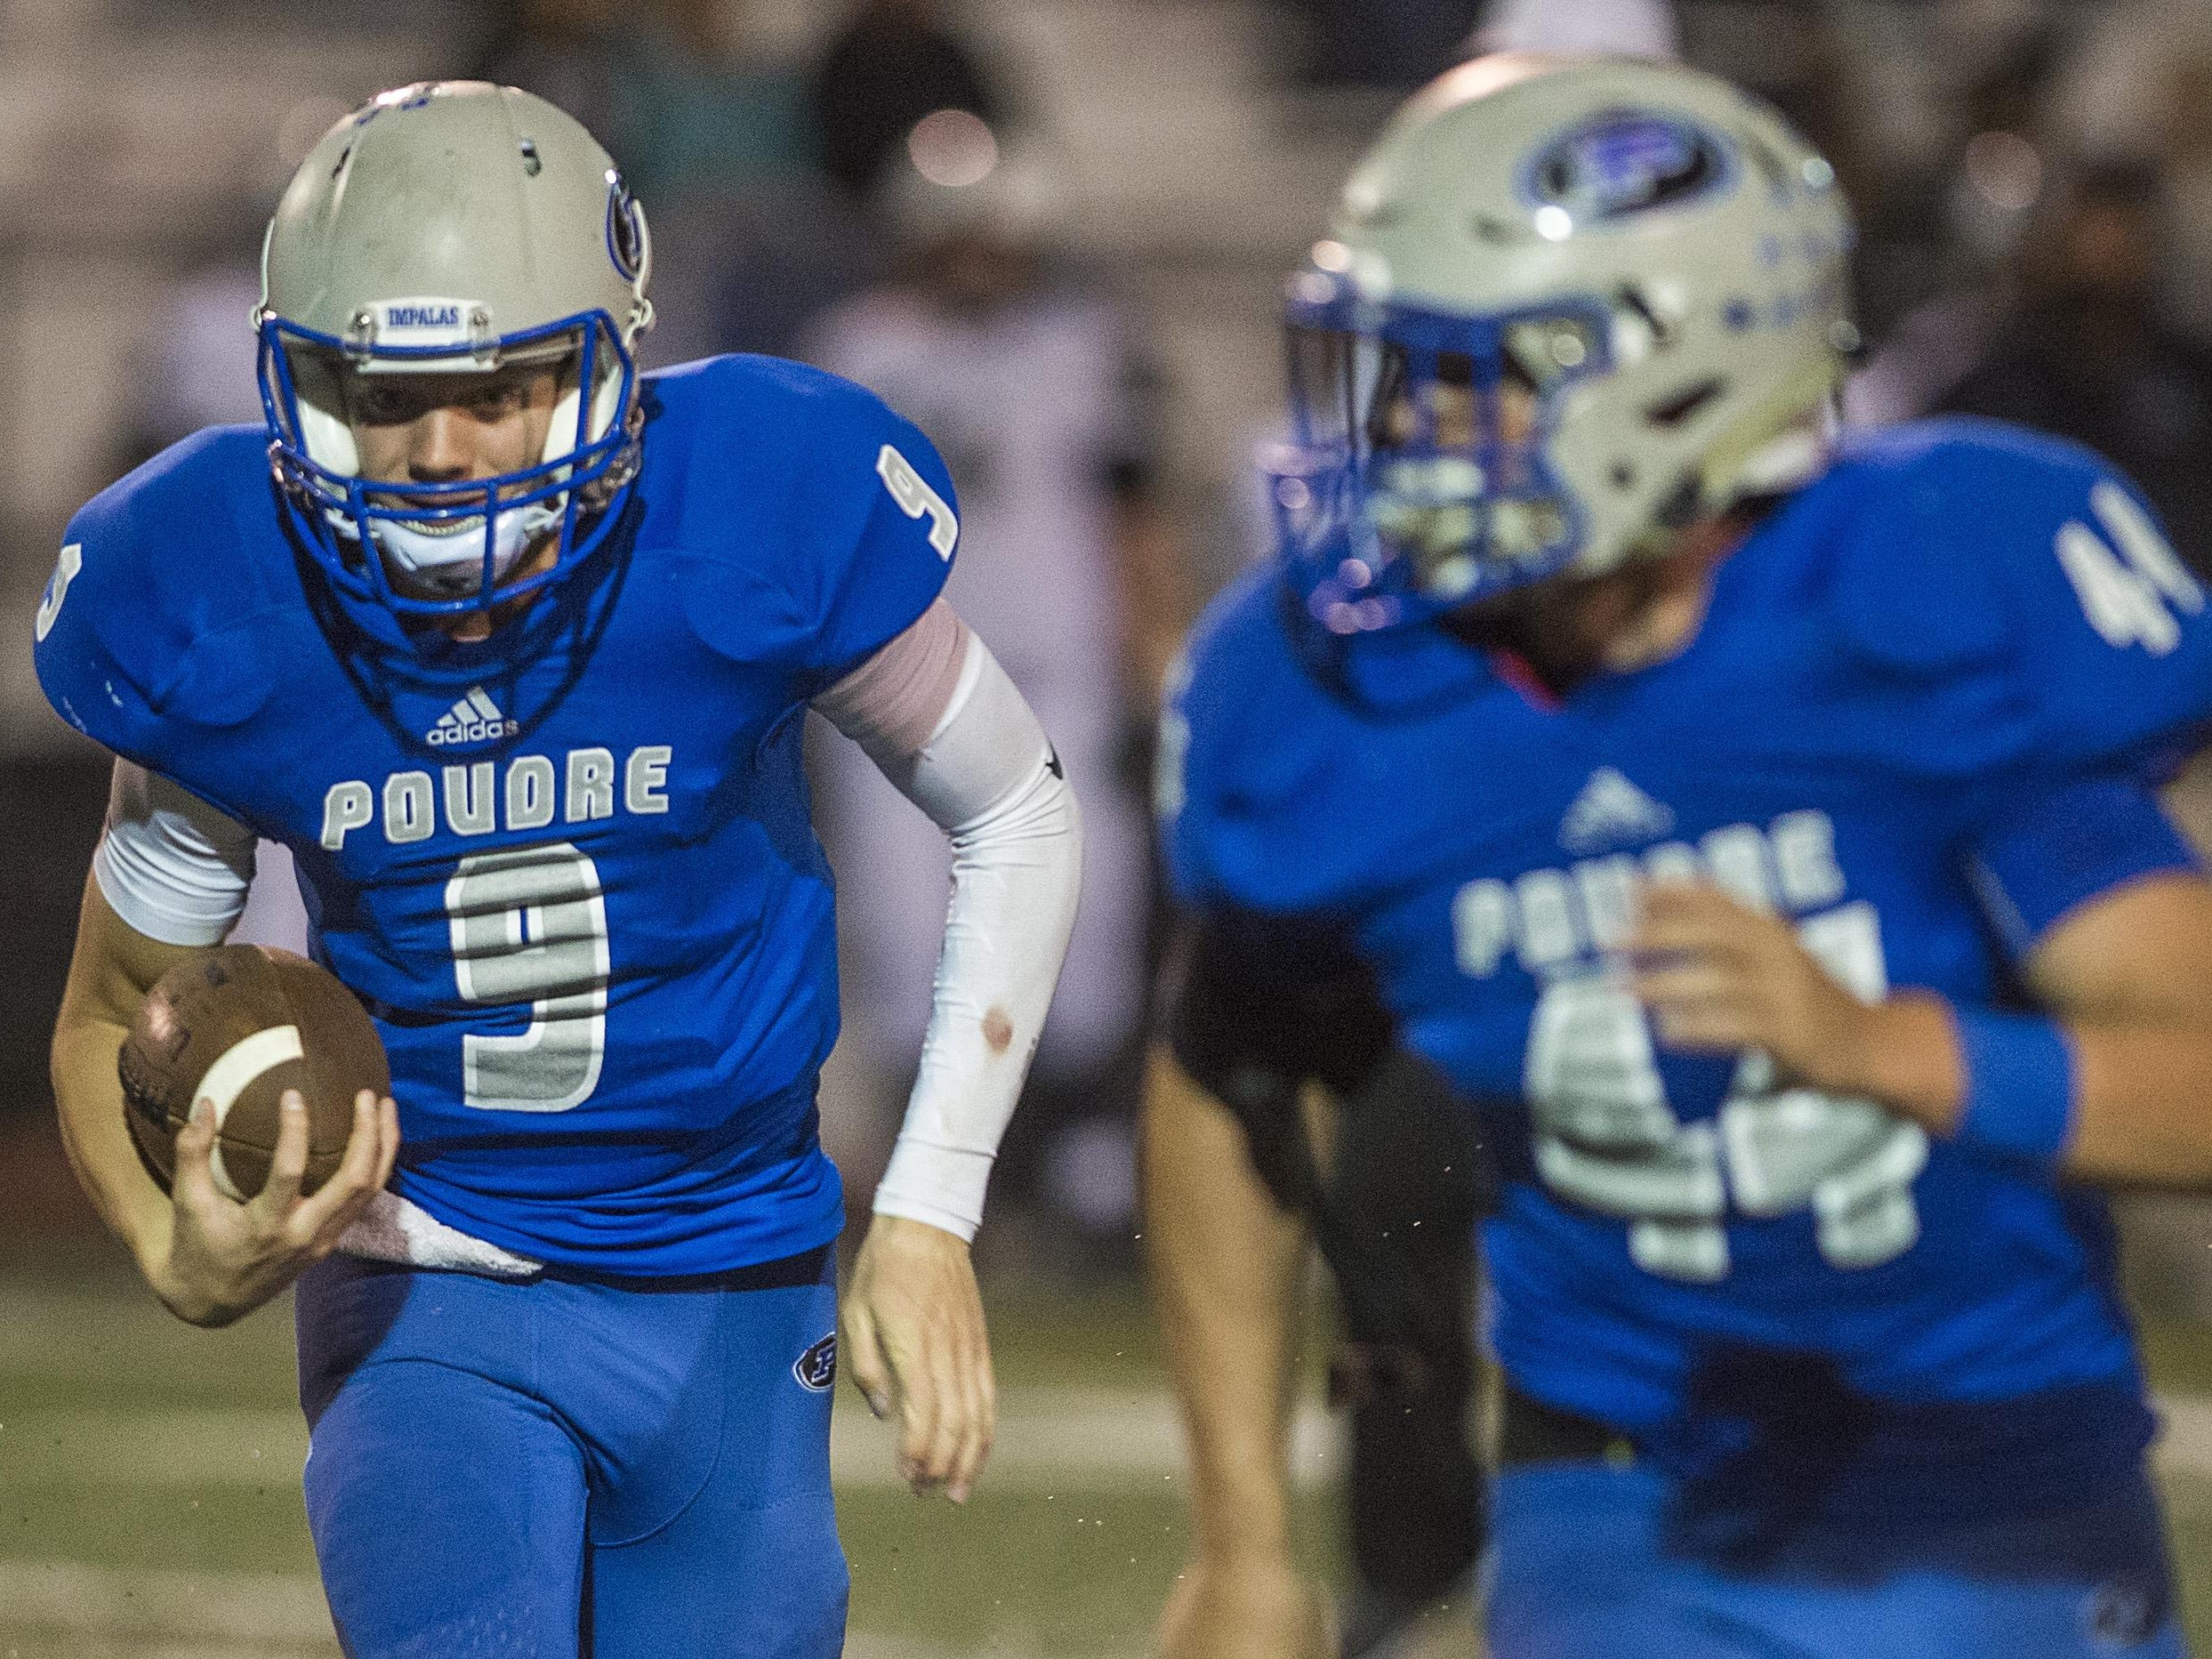 The Poudre High School football team faces Rocky Mountain at 7 p.m. Friday.